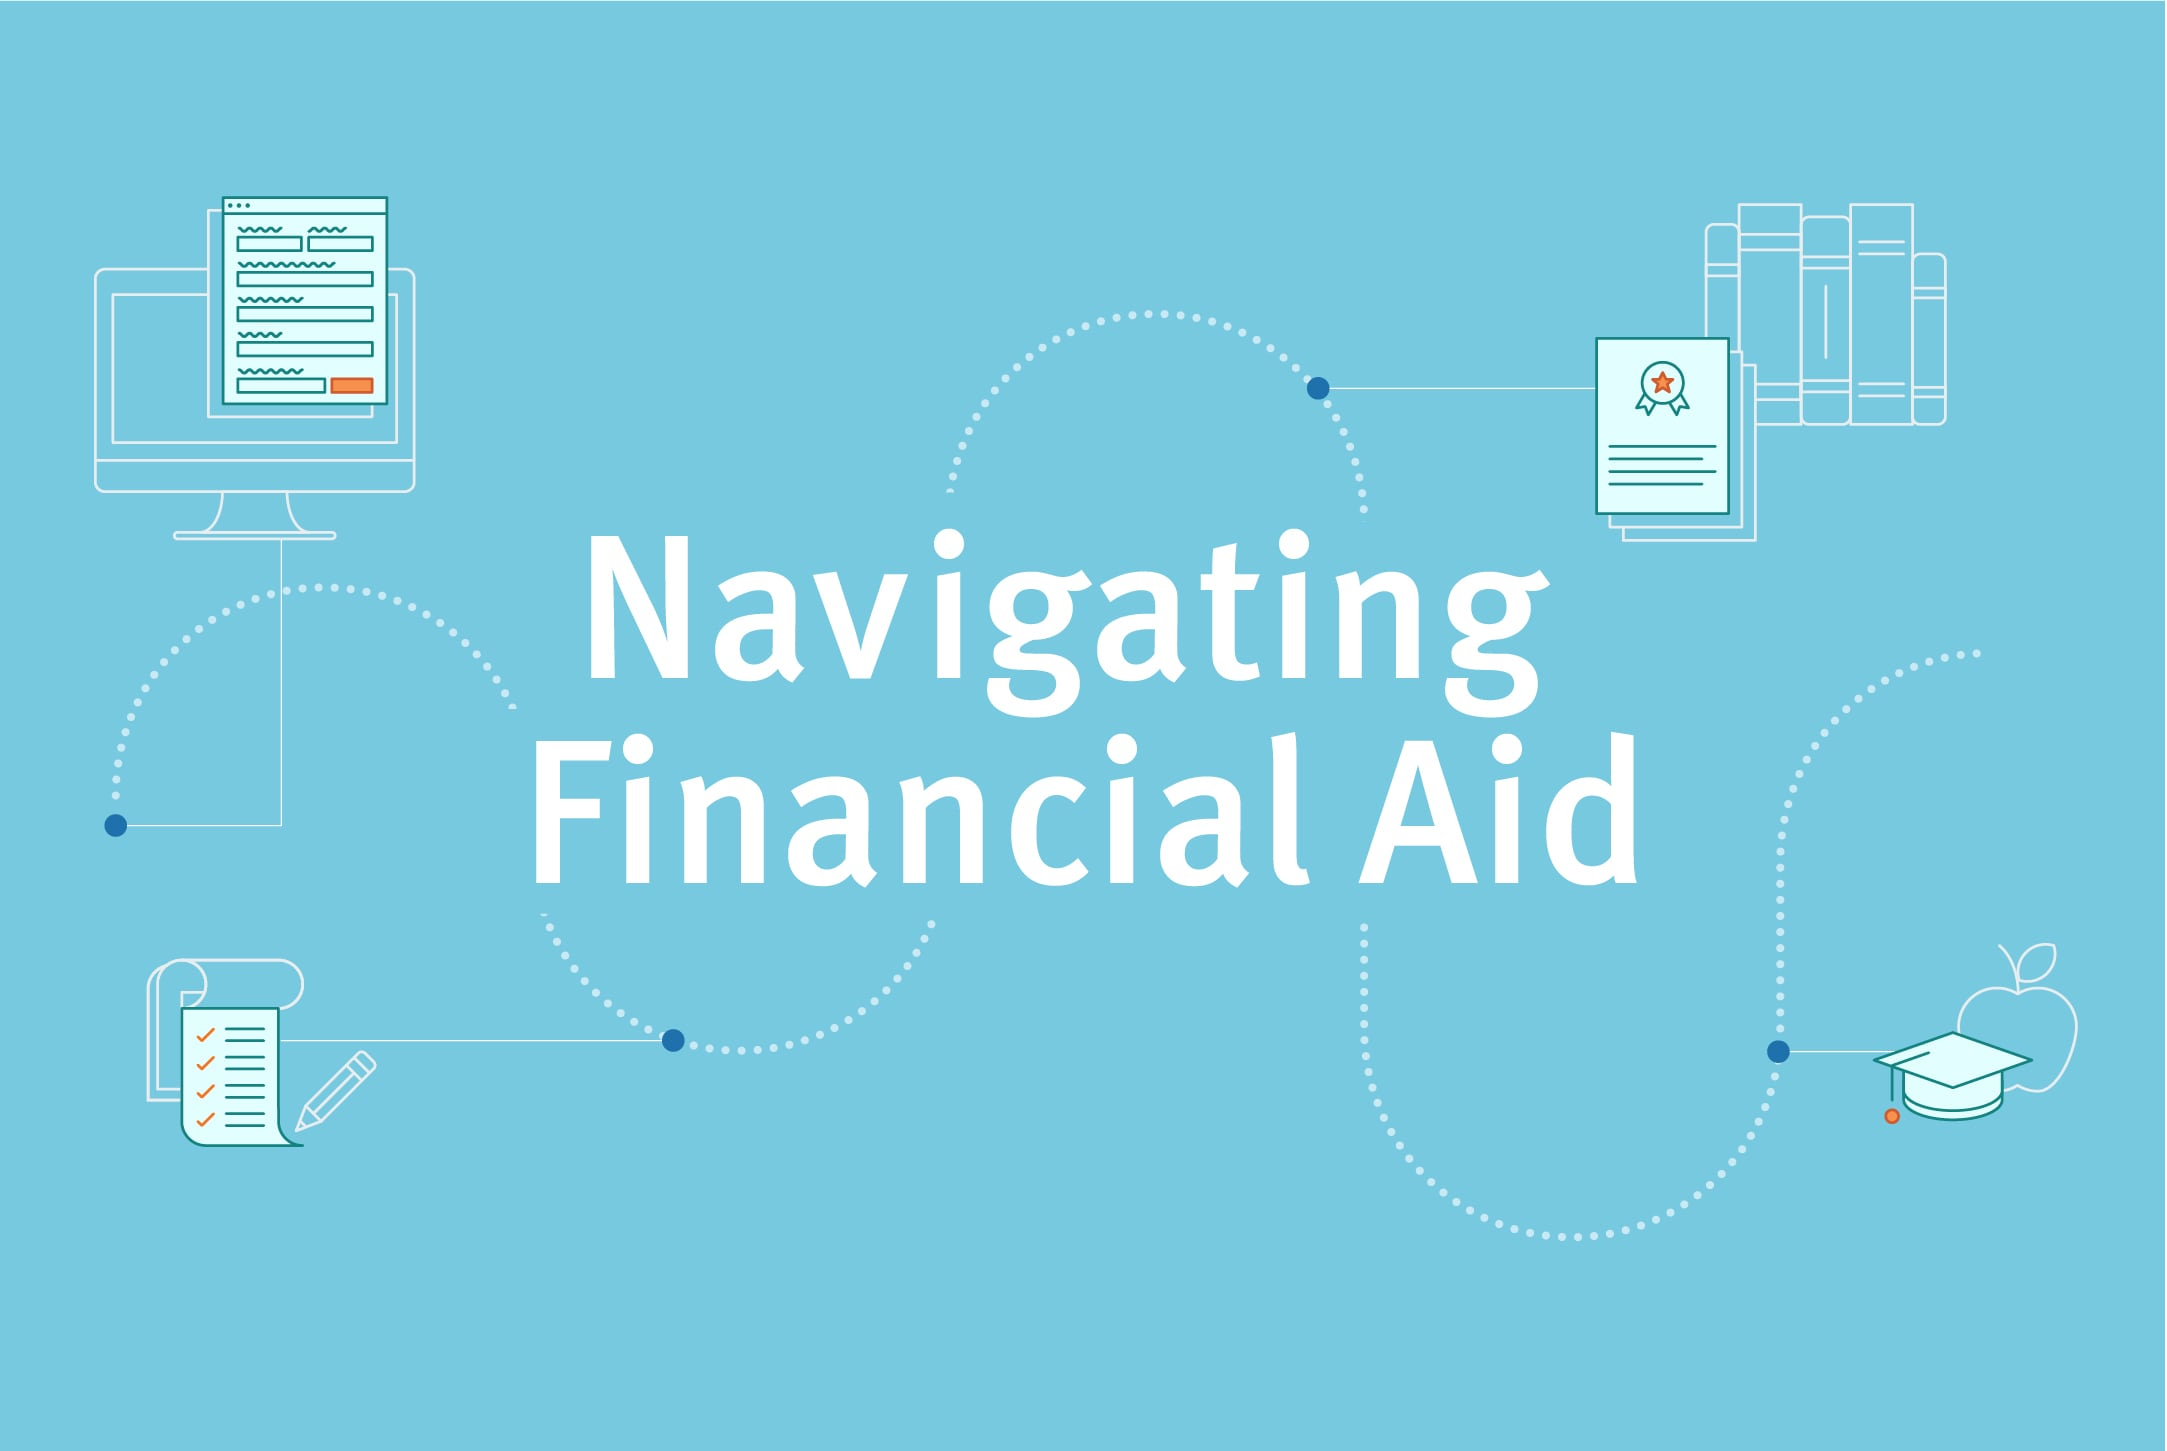 Navigating Financial Aid - Financial Aid